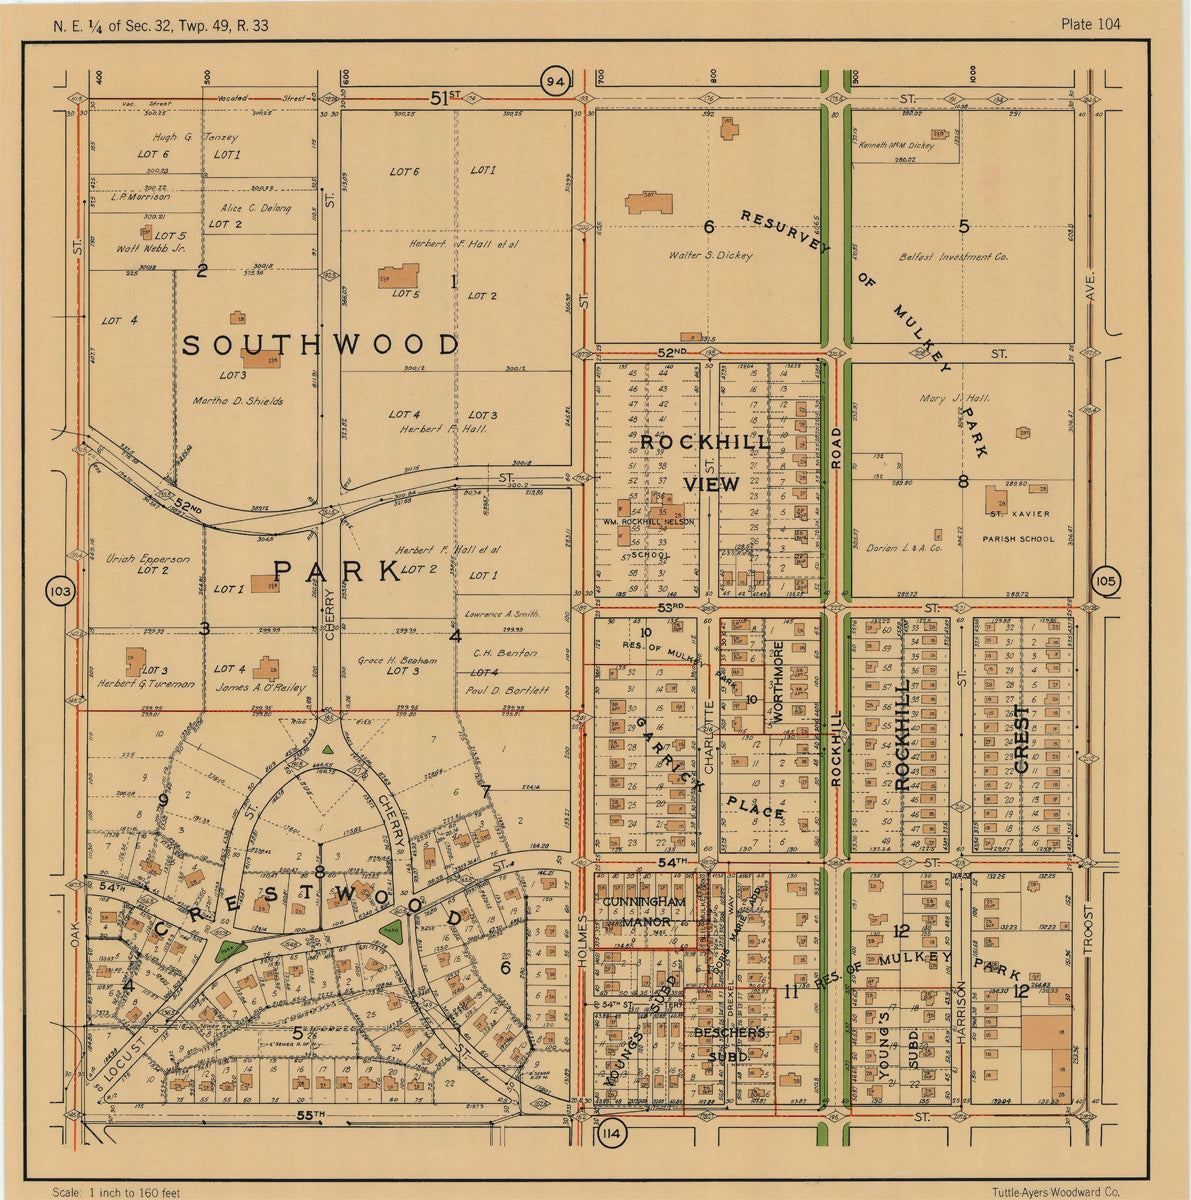 Kansas City 1925 Neighborhood Map - Plate #104 51st-55th Oak-Troost